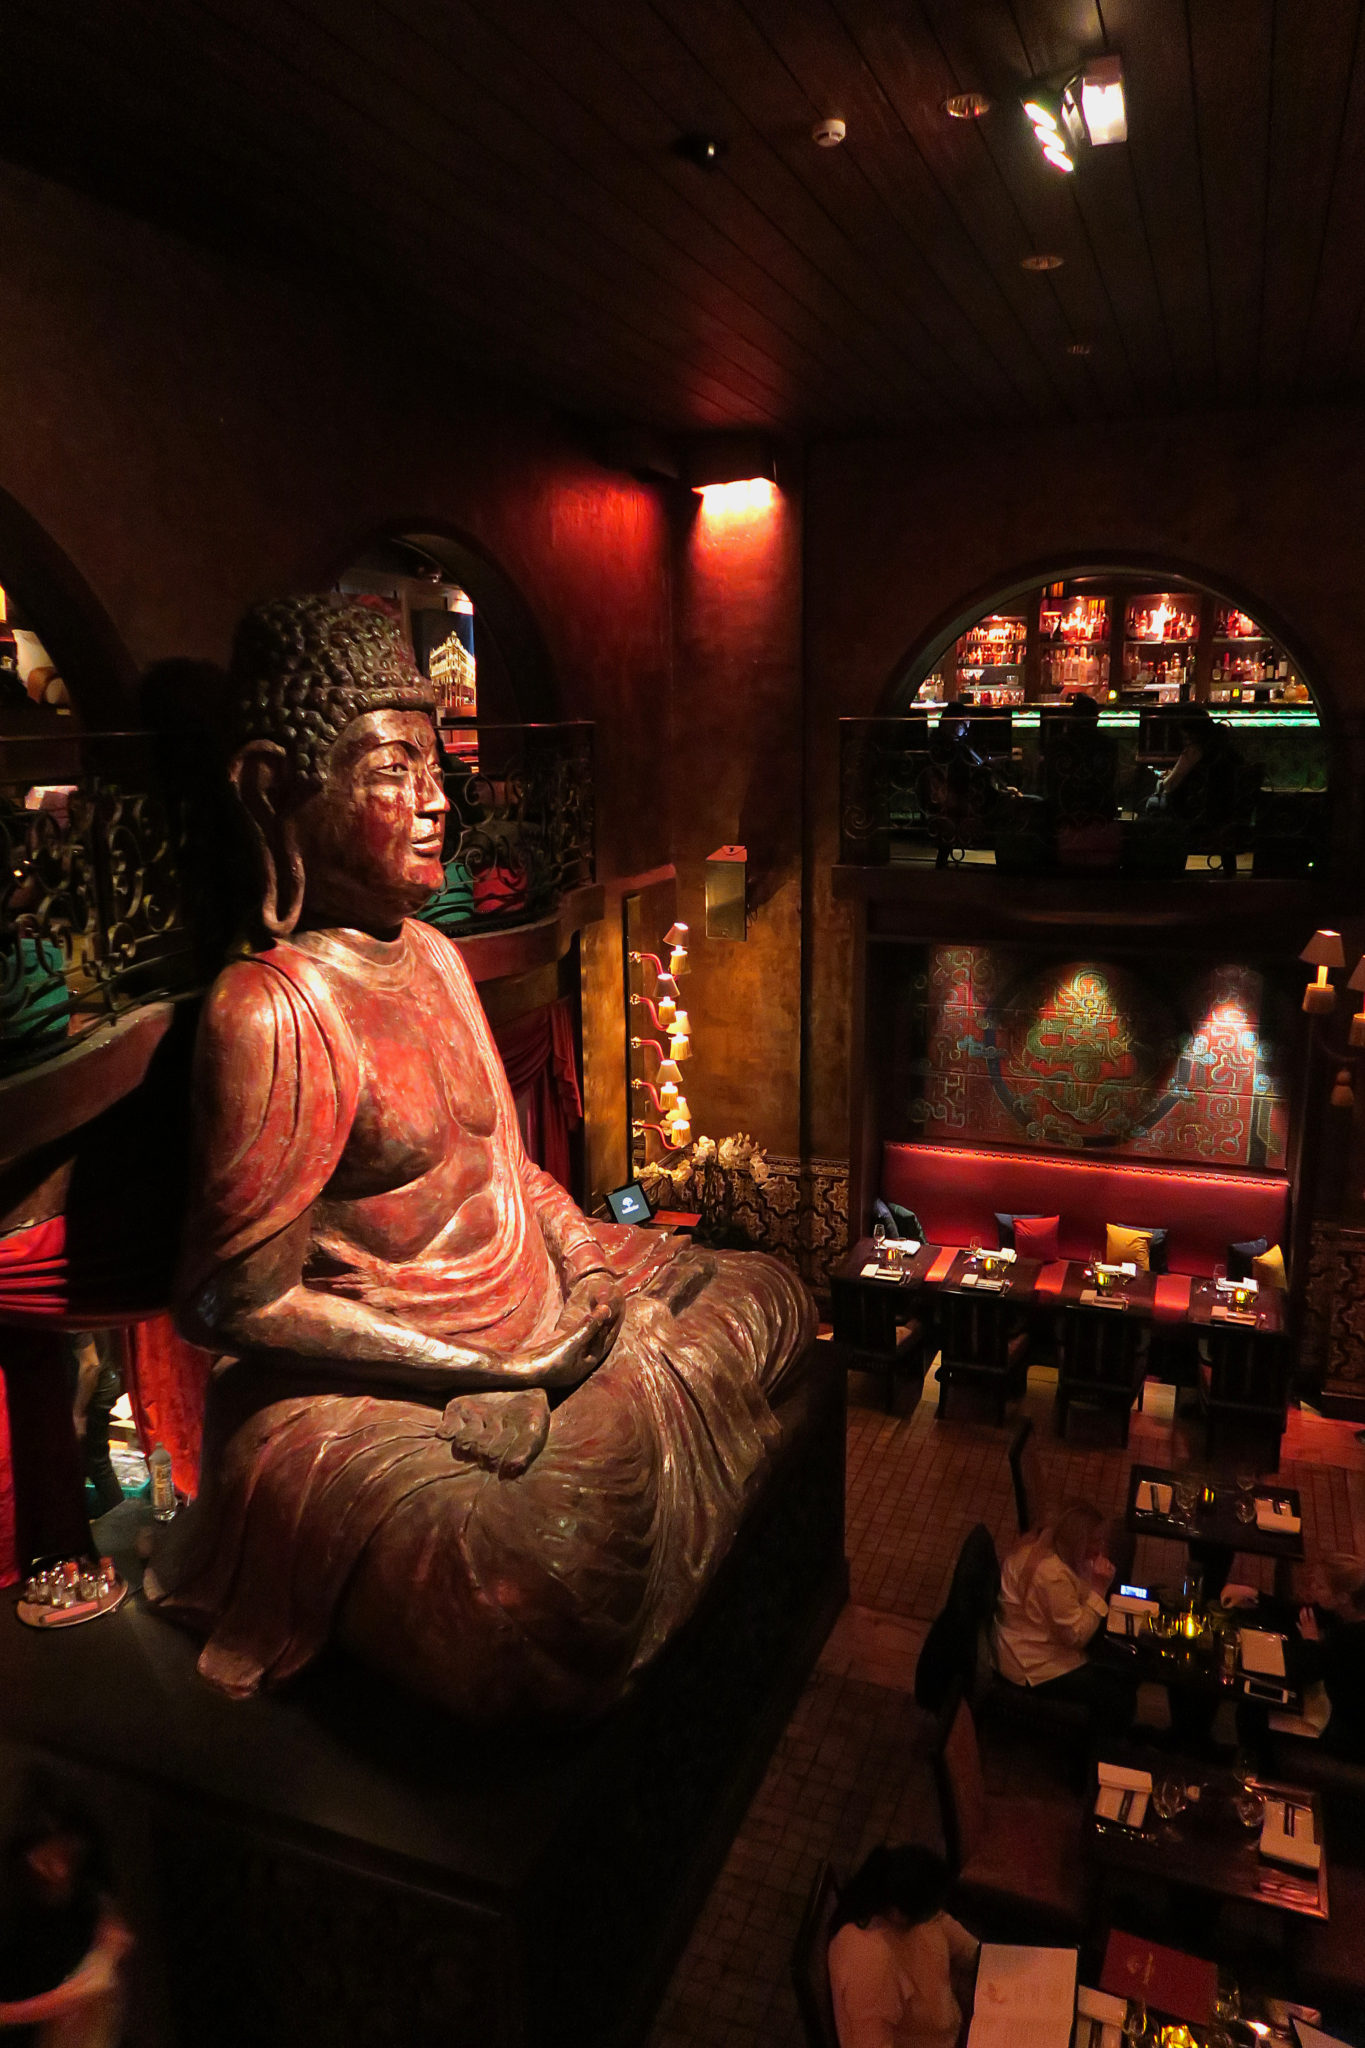 Hemaposesesvalises_buddha_bar_paris_statue